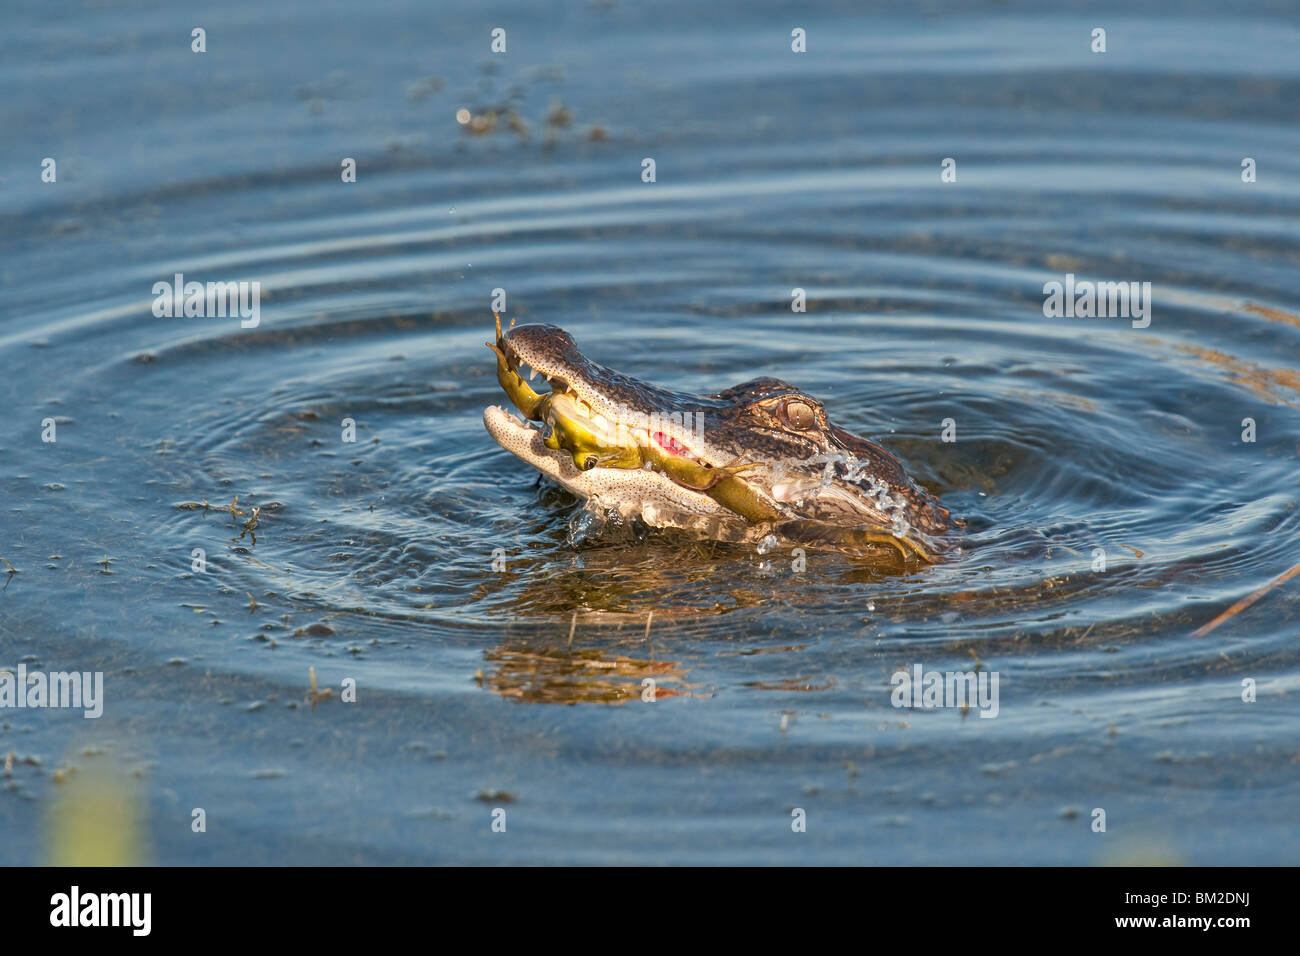 A small Alligator eating a large frog - Stock Image